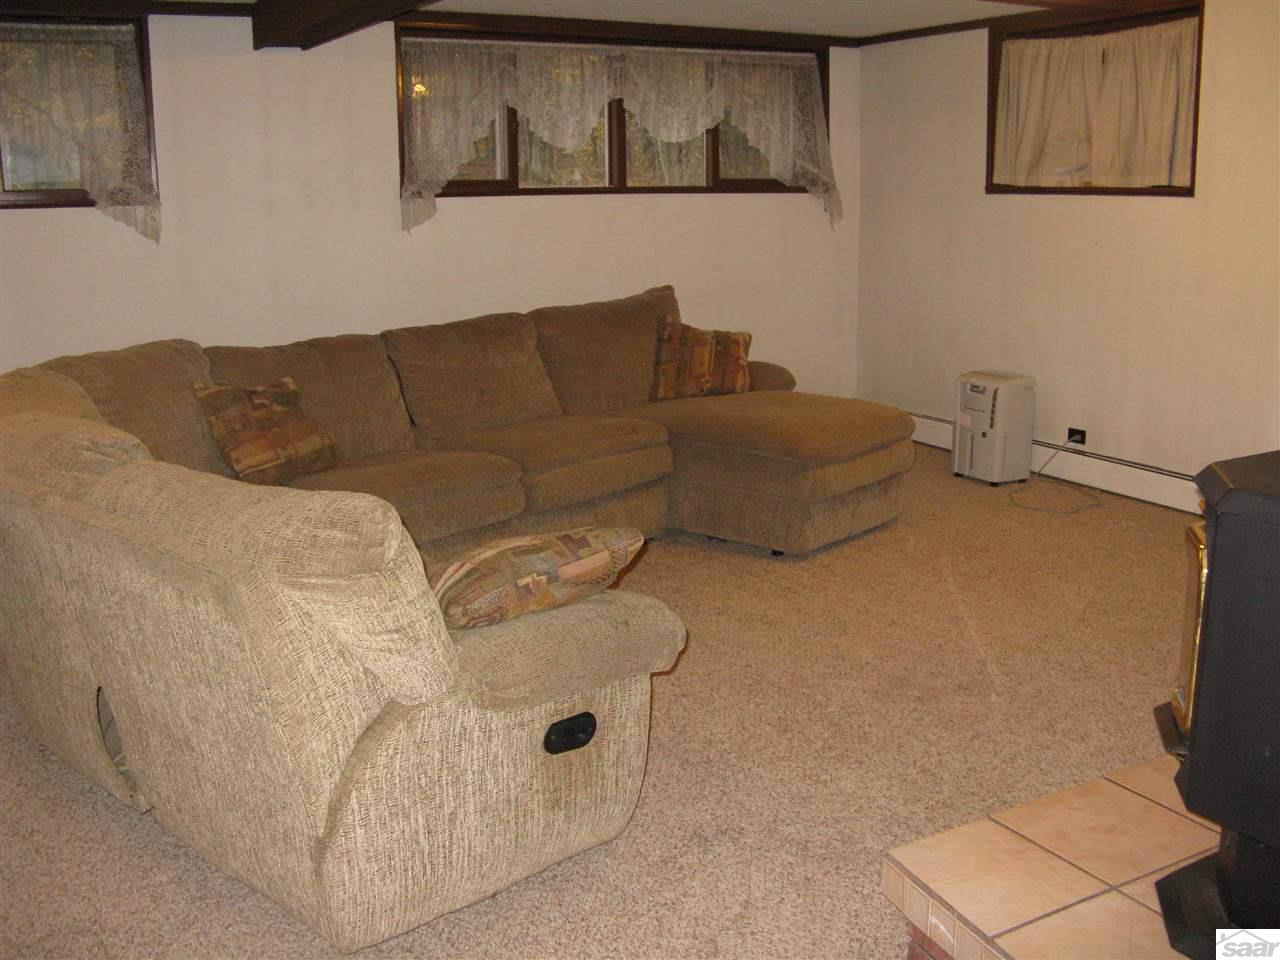 Spacious enough for that big sectional you have always wanted